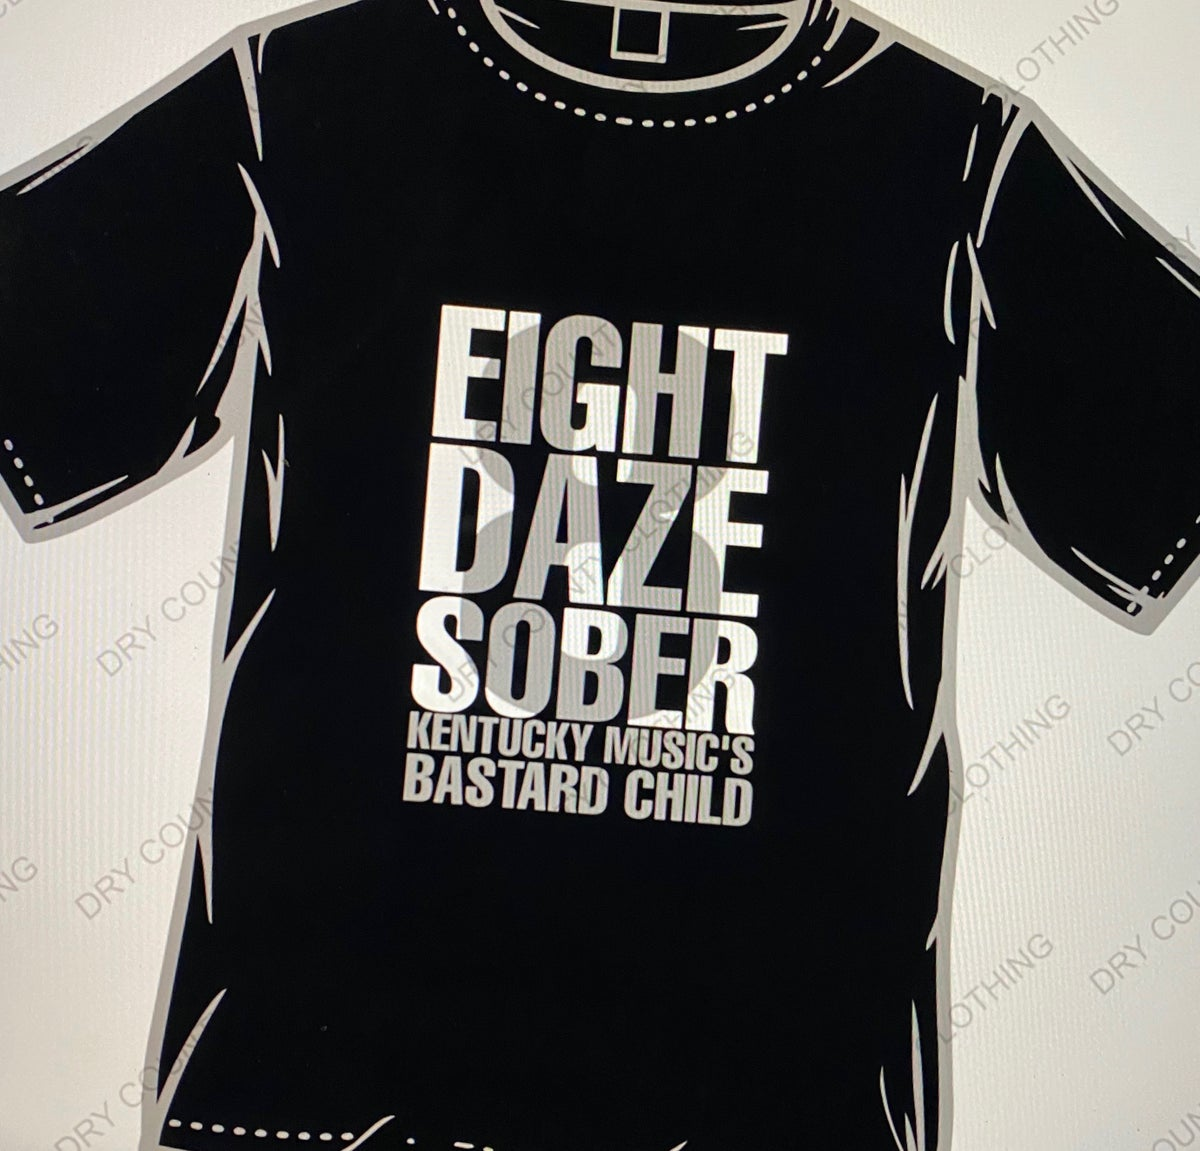 Image of 8 Daze Sober Bastard Child Shirt